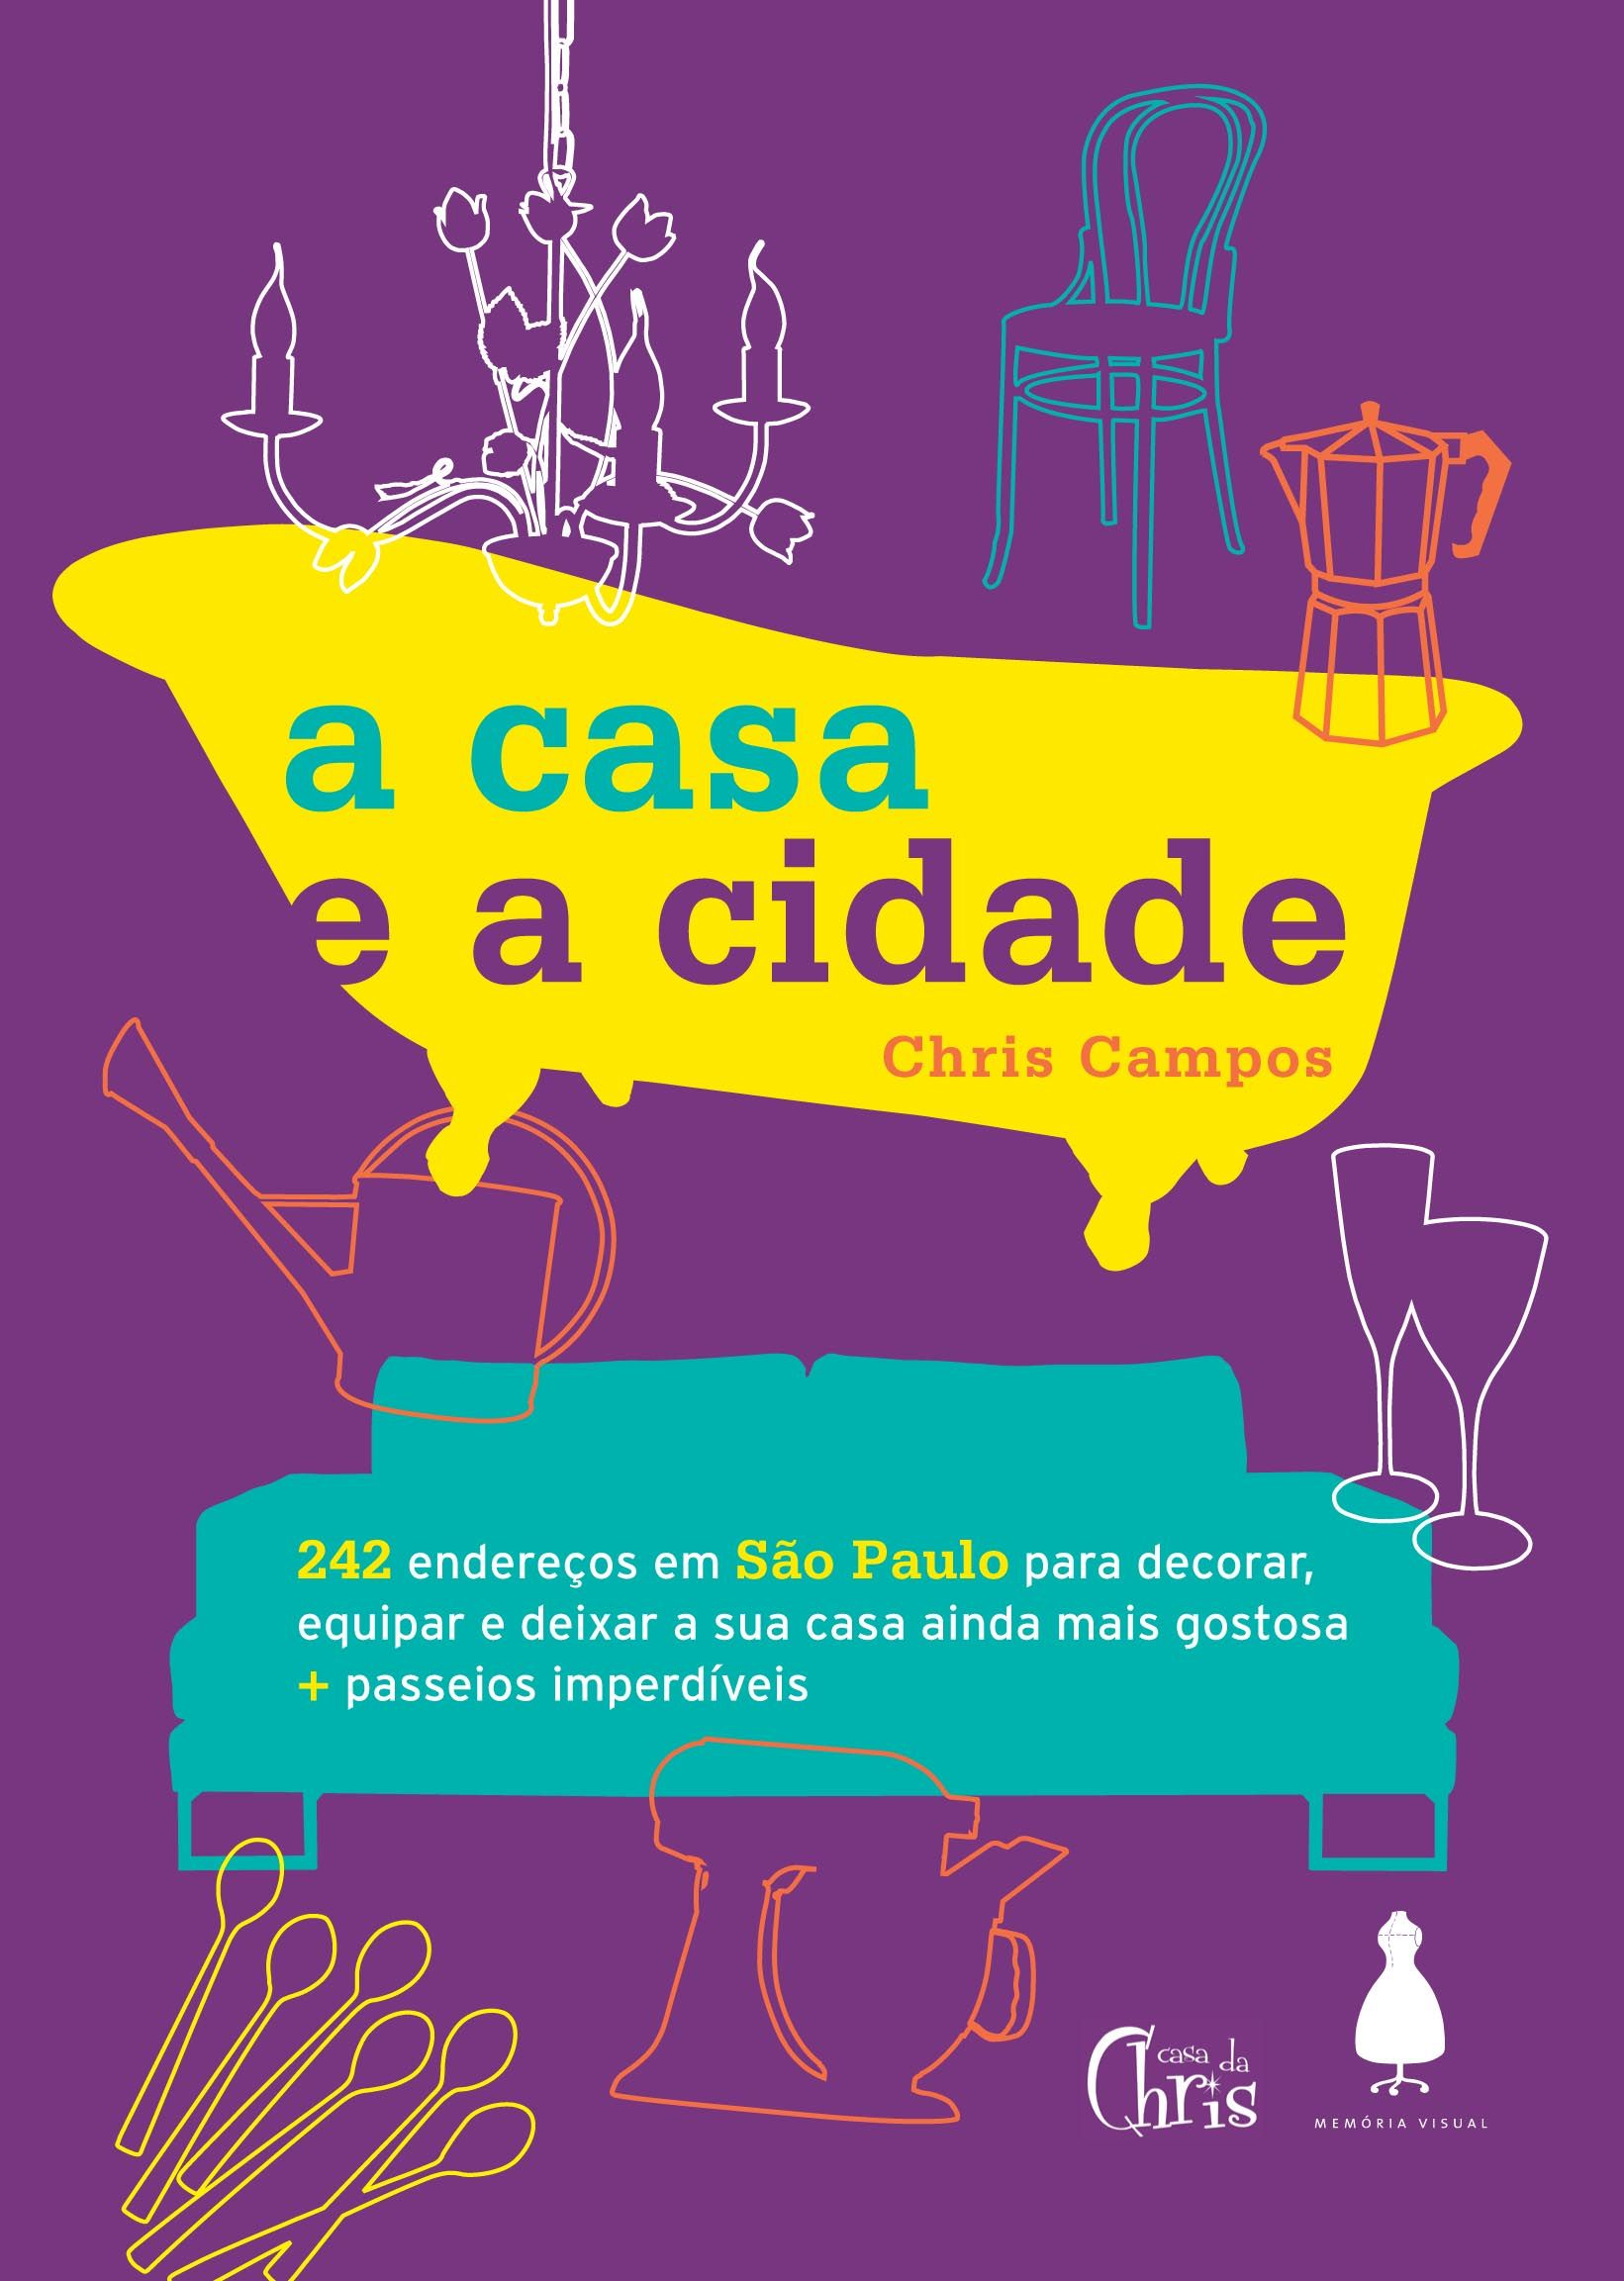 A casa e a cidade, by Chris Campos is a great guide with all the best and cool addresses for everything home and décor in São Paulo. A must have if you love to know what's new in town.